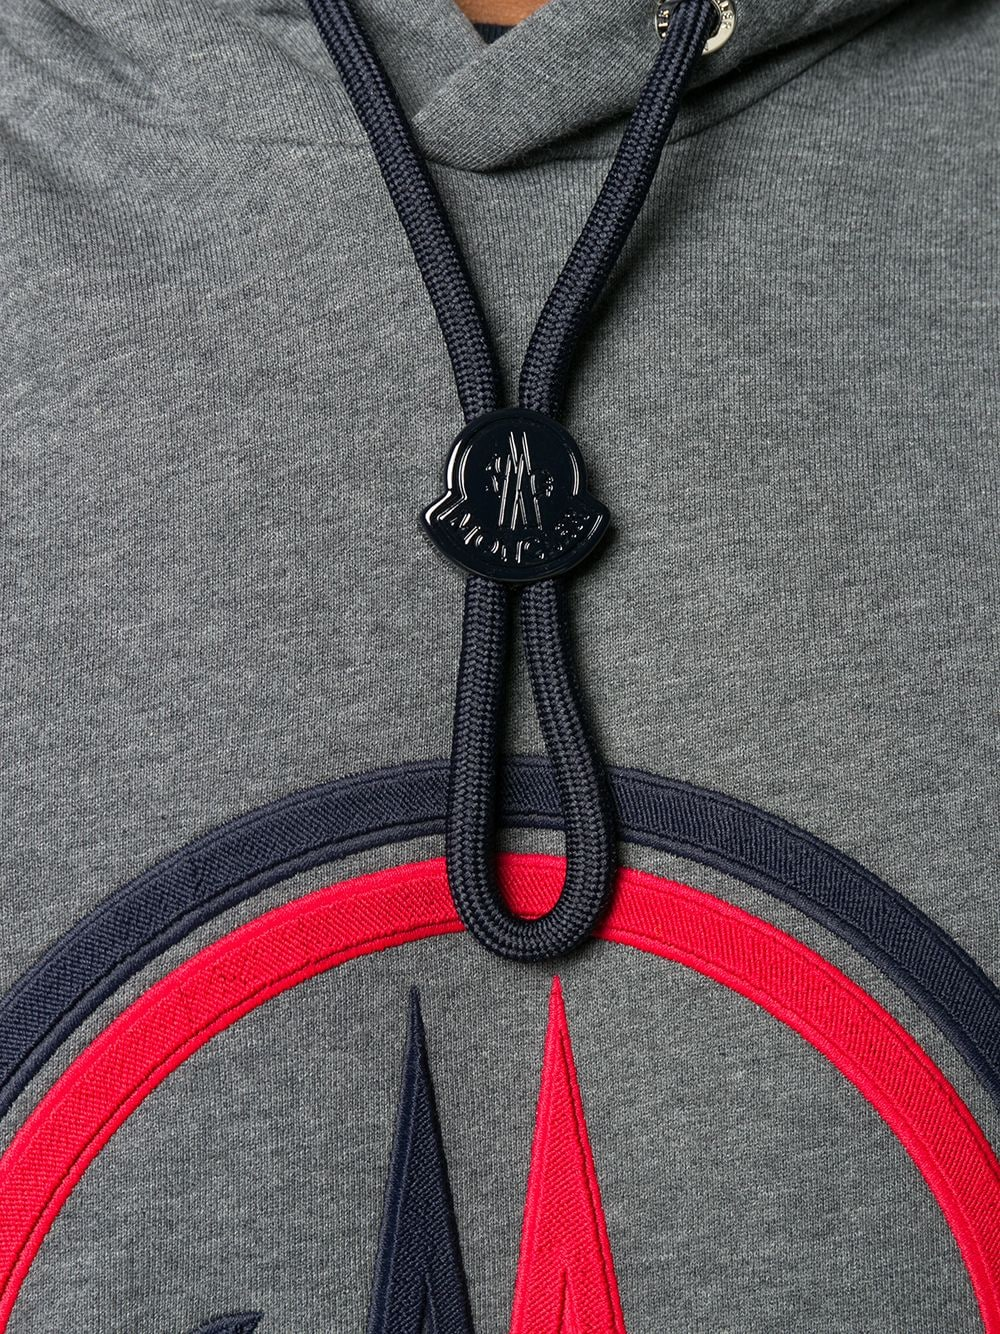 grey cotton Moncler logo embroidery hoodie featuring drawstring hood MONCLER |  | 8G746-10-80985940